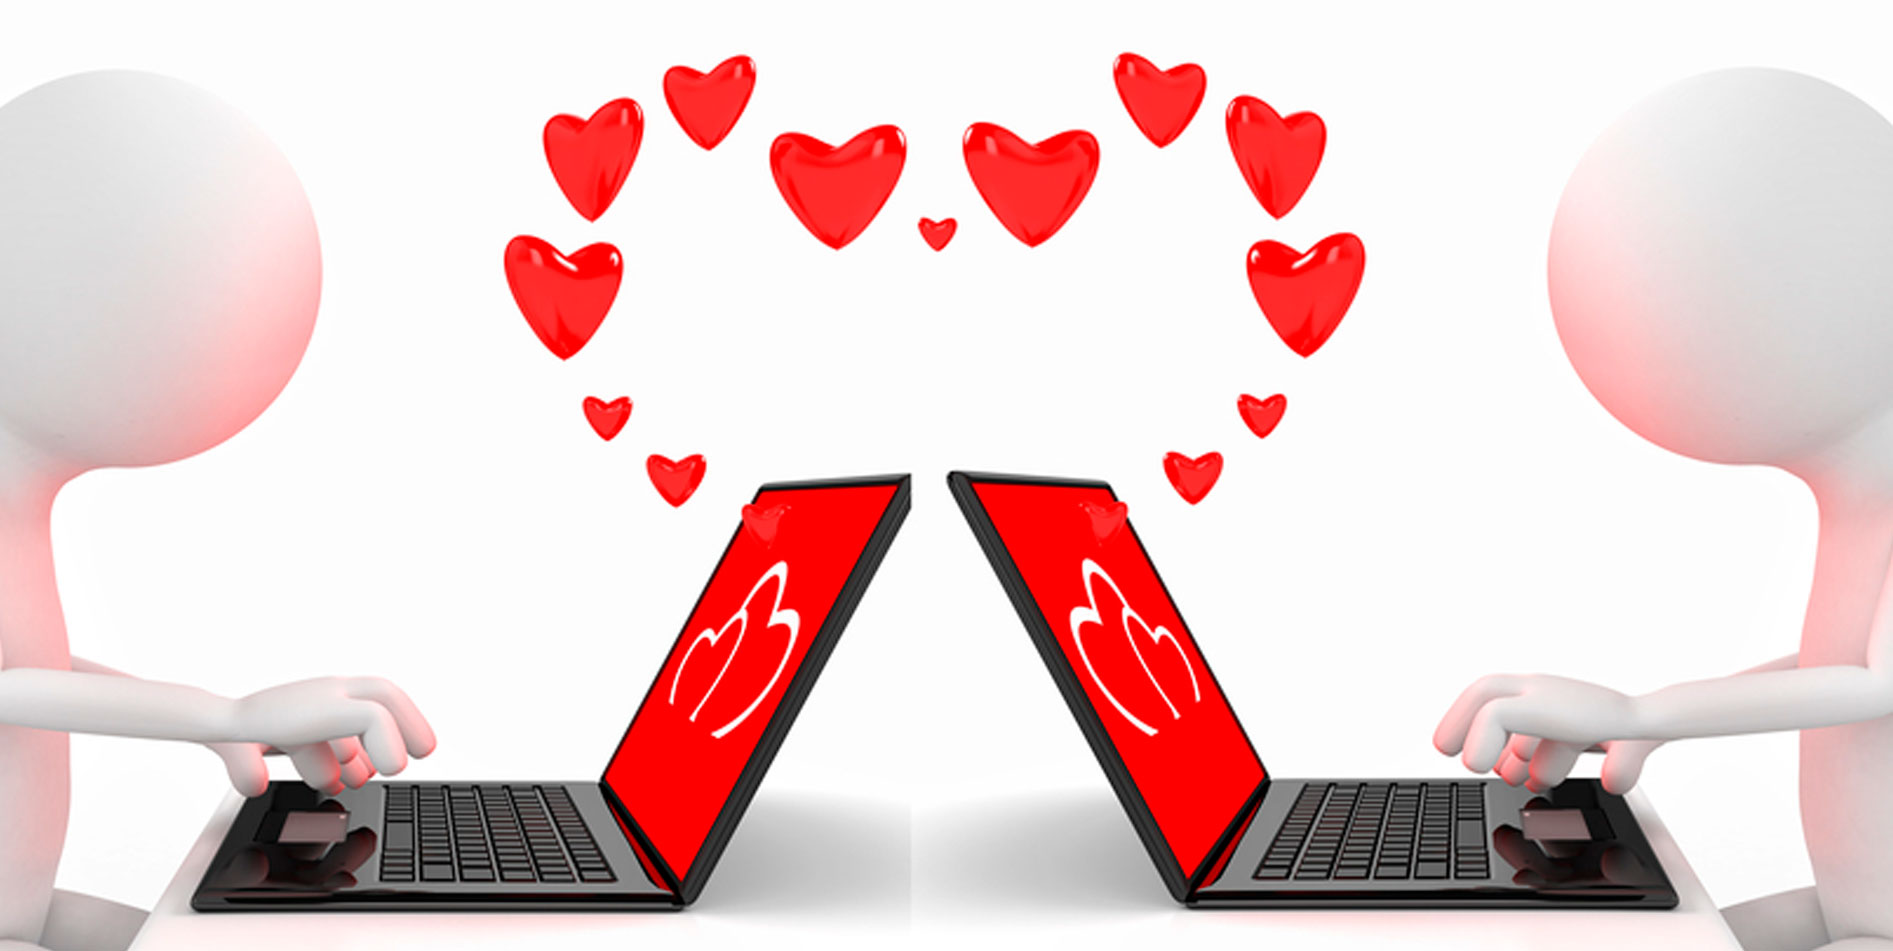 online dating eerste ontmoeting Online dating is in nederland nu ongekend populair meer dan 700 datingsites bel voorafgaand aan je eerste ontmoeting voordat je afreist.